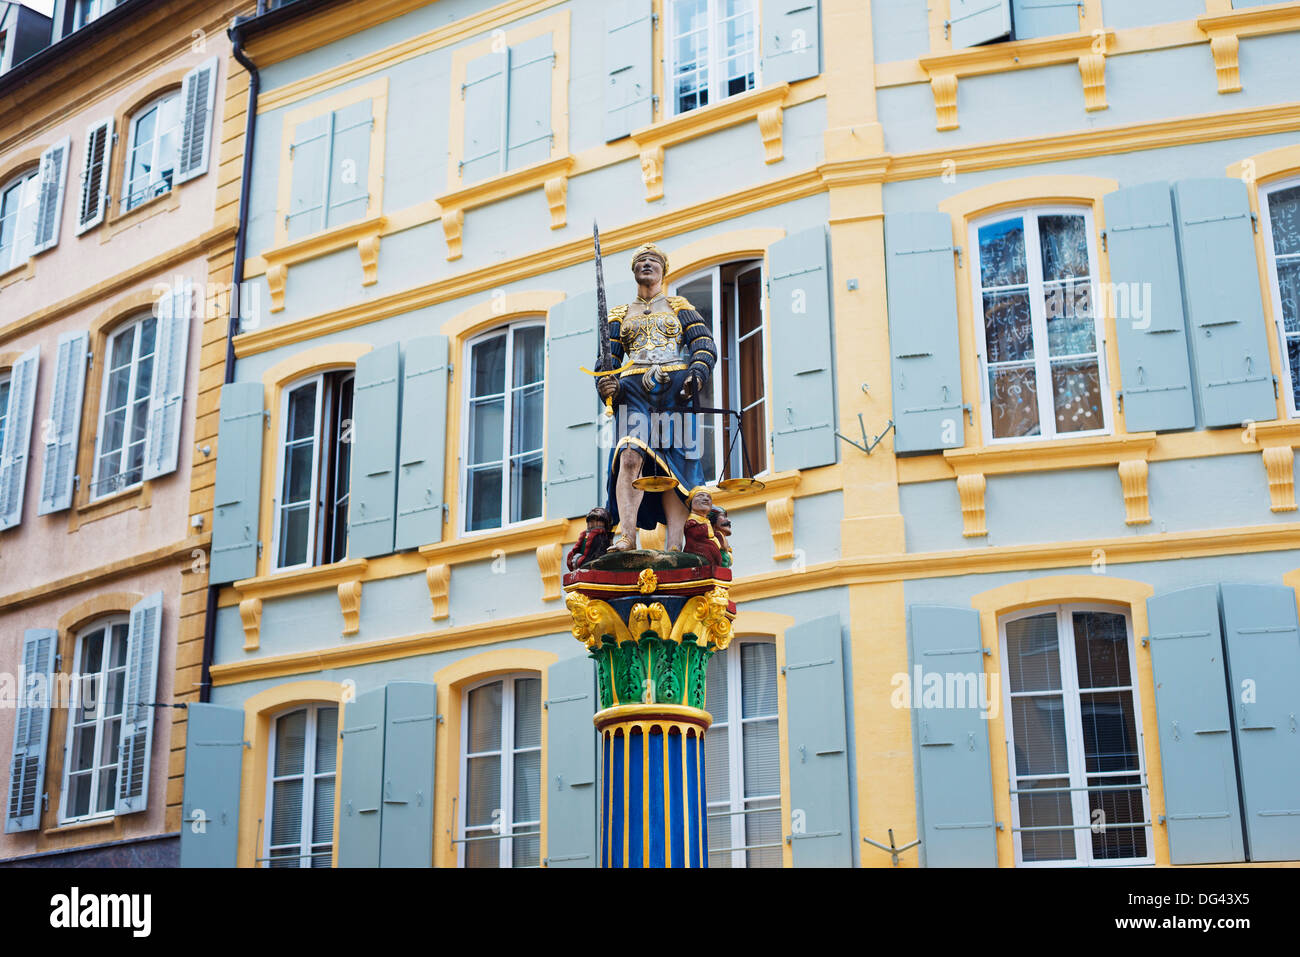 Justice statue in medieval old town square, Neuchatel, Switzerland, Europe - Stock Image